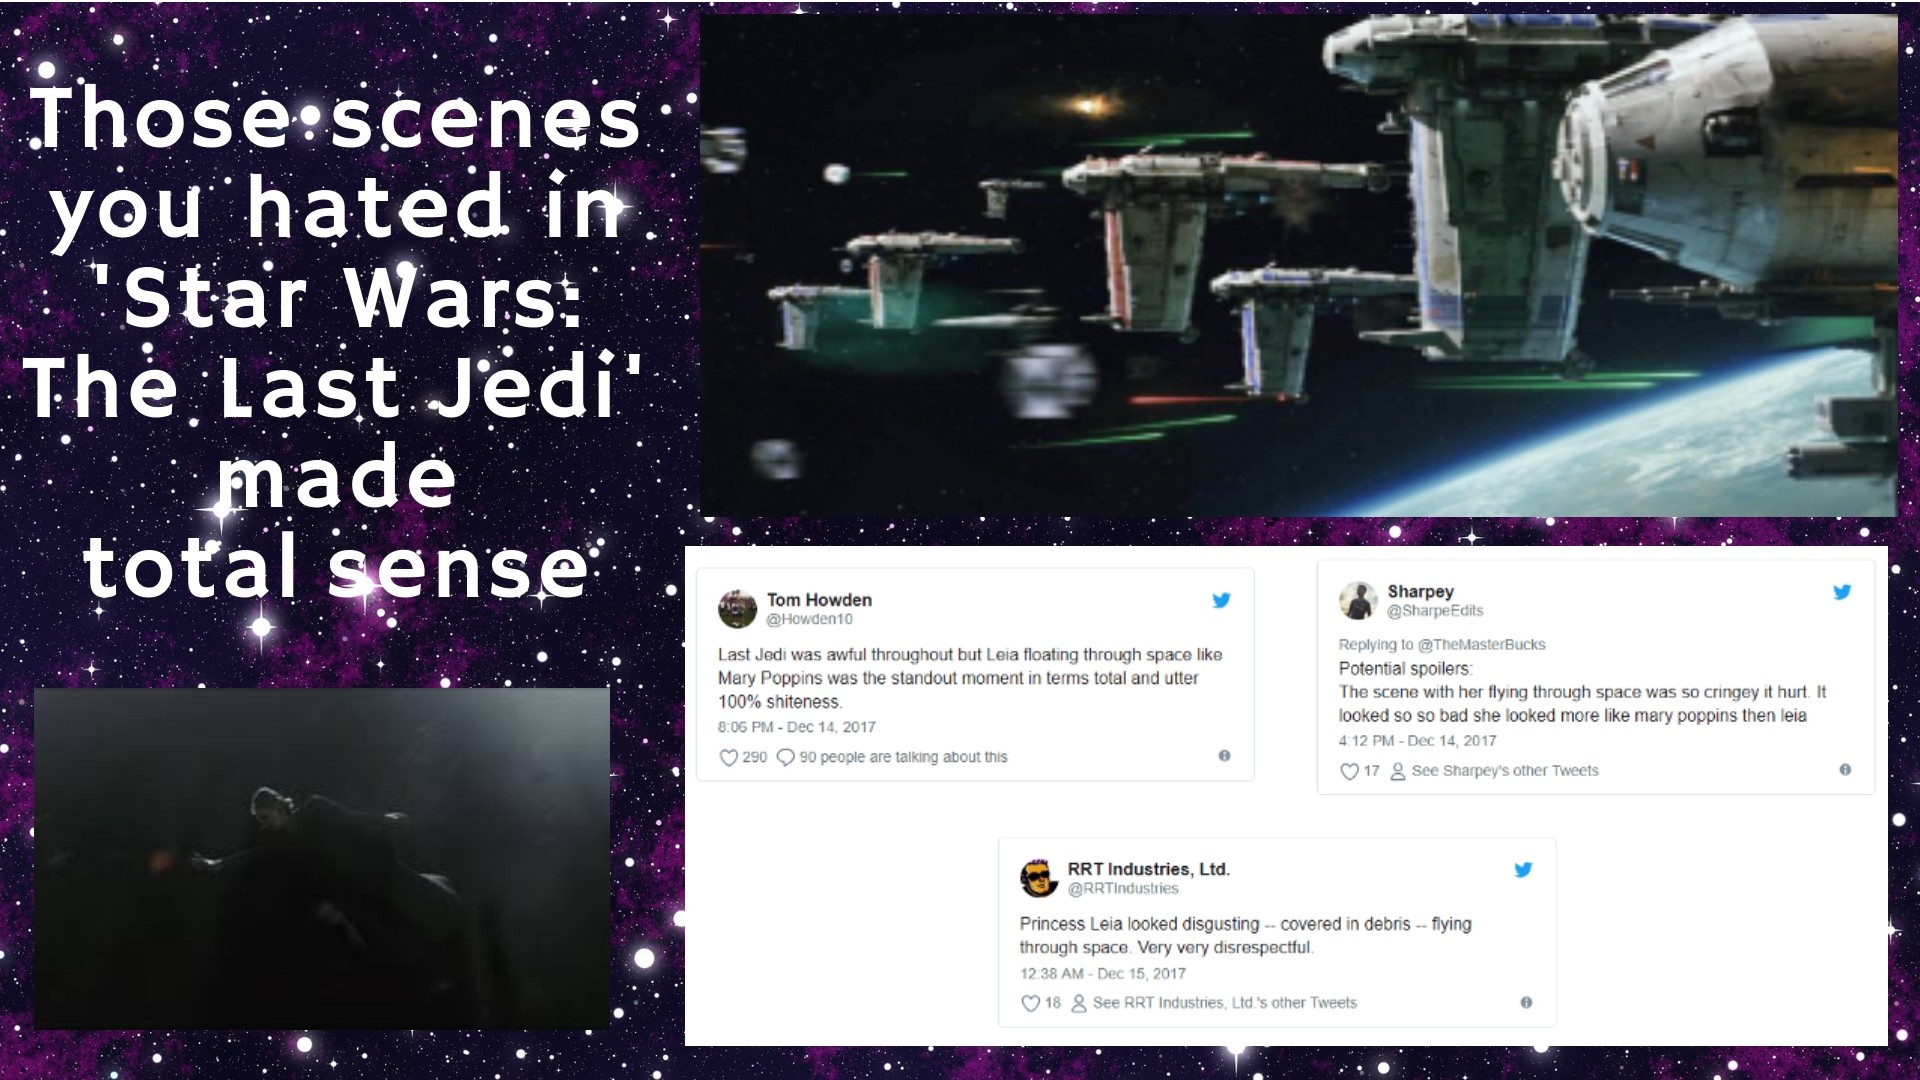 Those scenes you hated in 'Star Wars: The Last Jedi' made